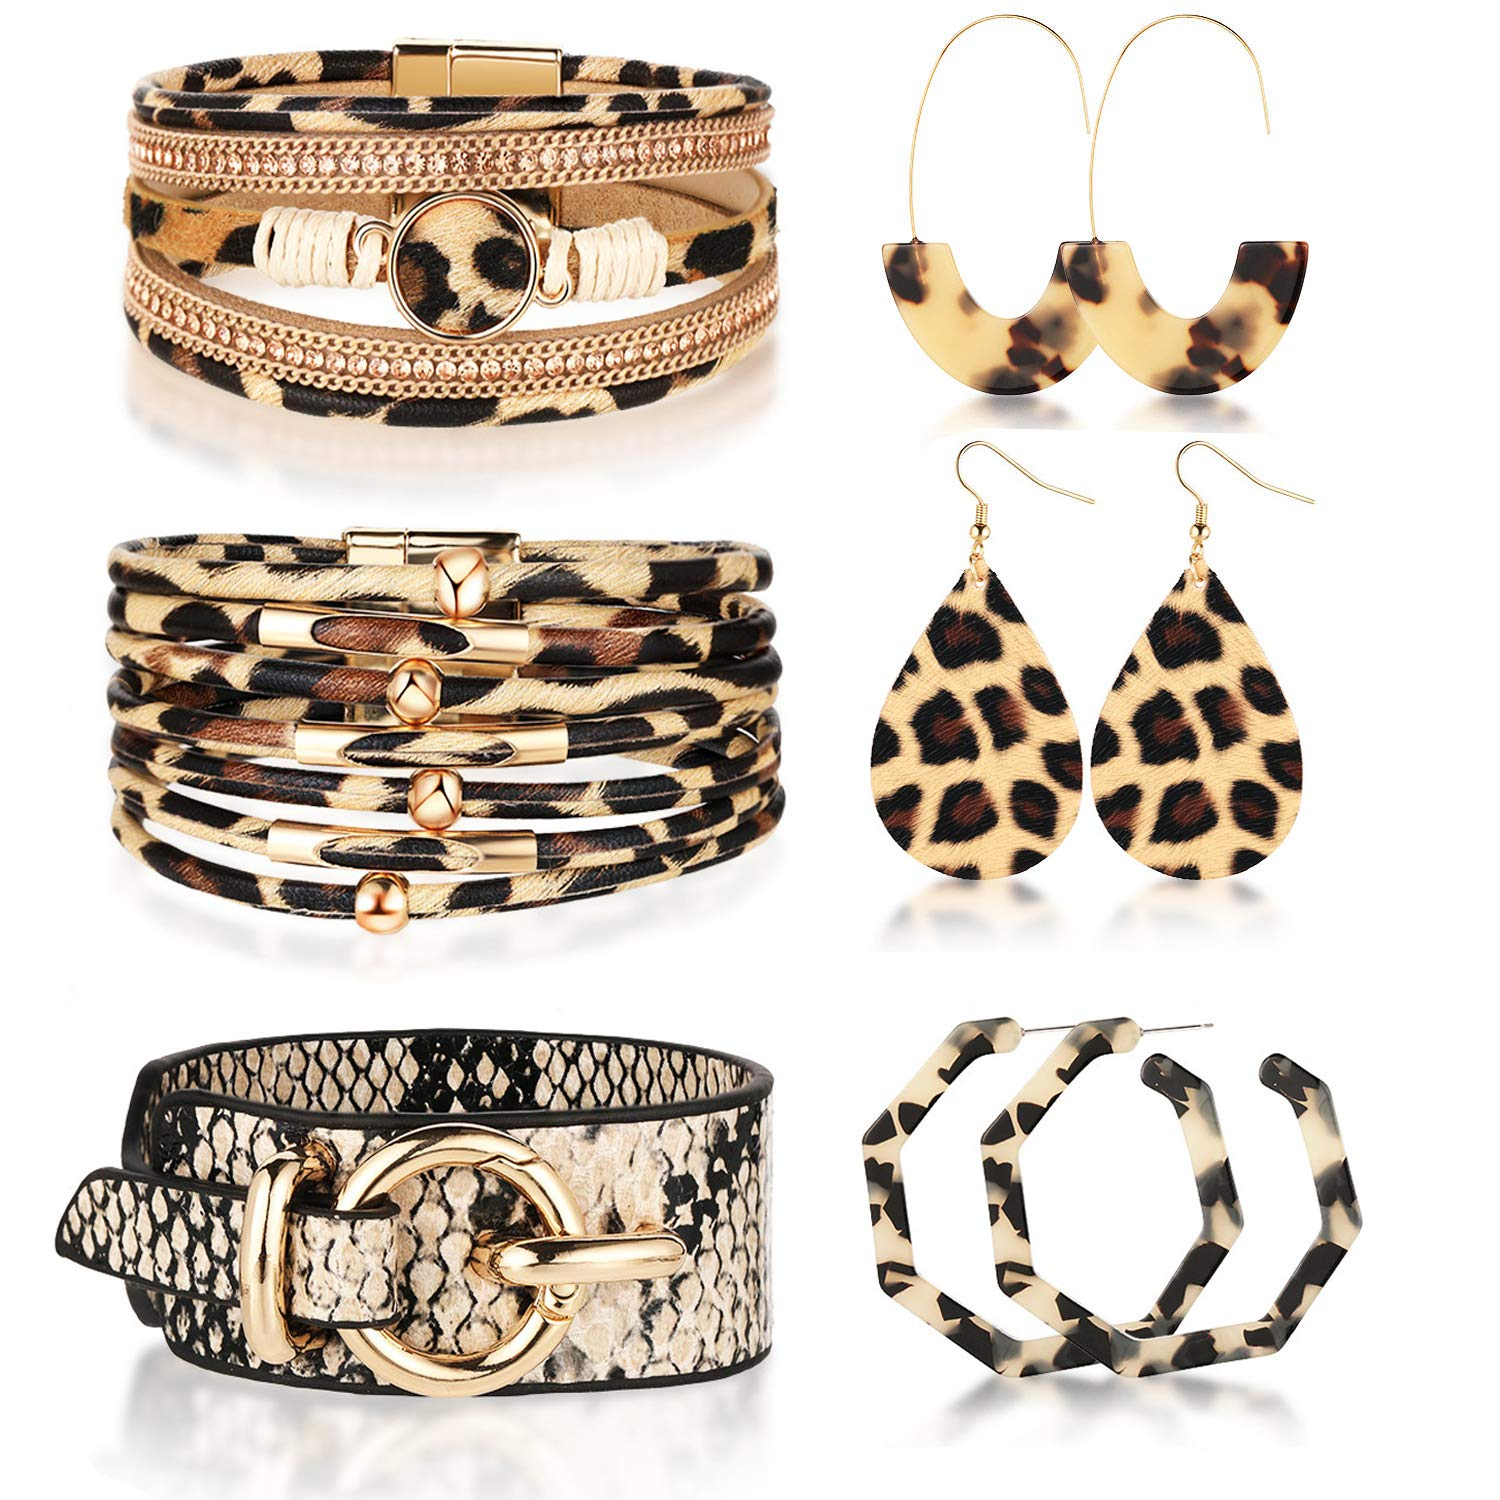 Hicarer 6 Pieces Leopard Snakeskin Print Leather Cuff Bracelets and Leopard Hoop Dangle Earring